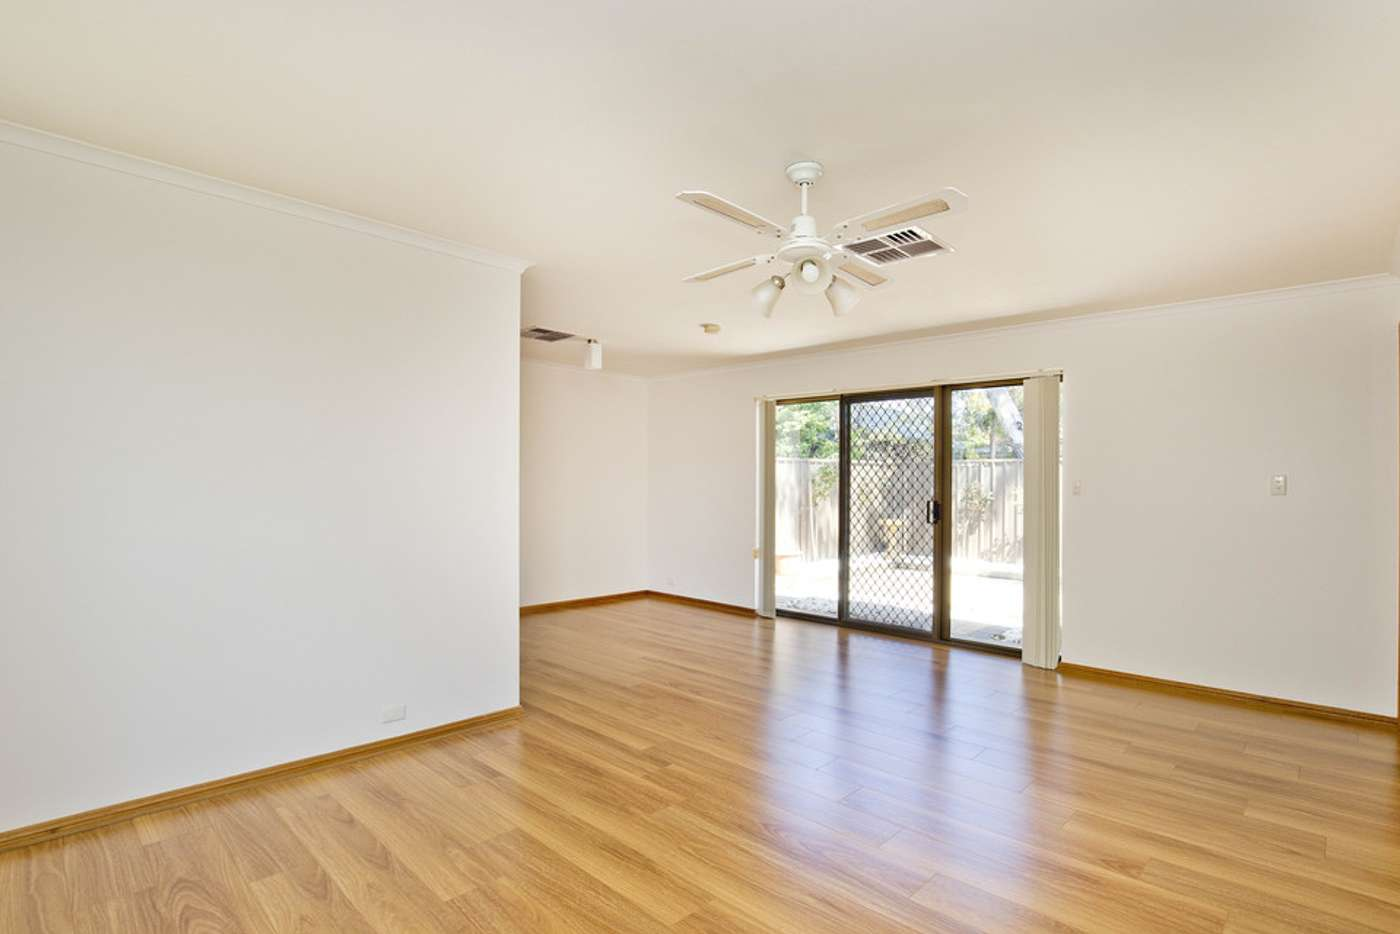 Seventh view of Homely unit listing, 3/18 Gorge Road, Campbelltown SA 5074